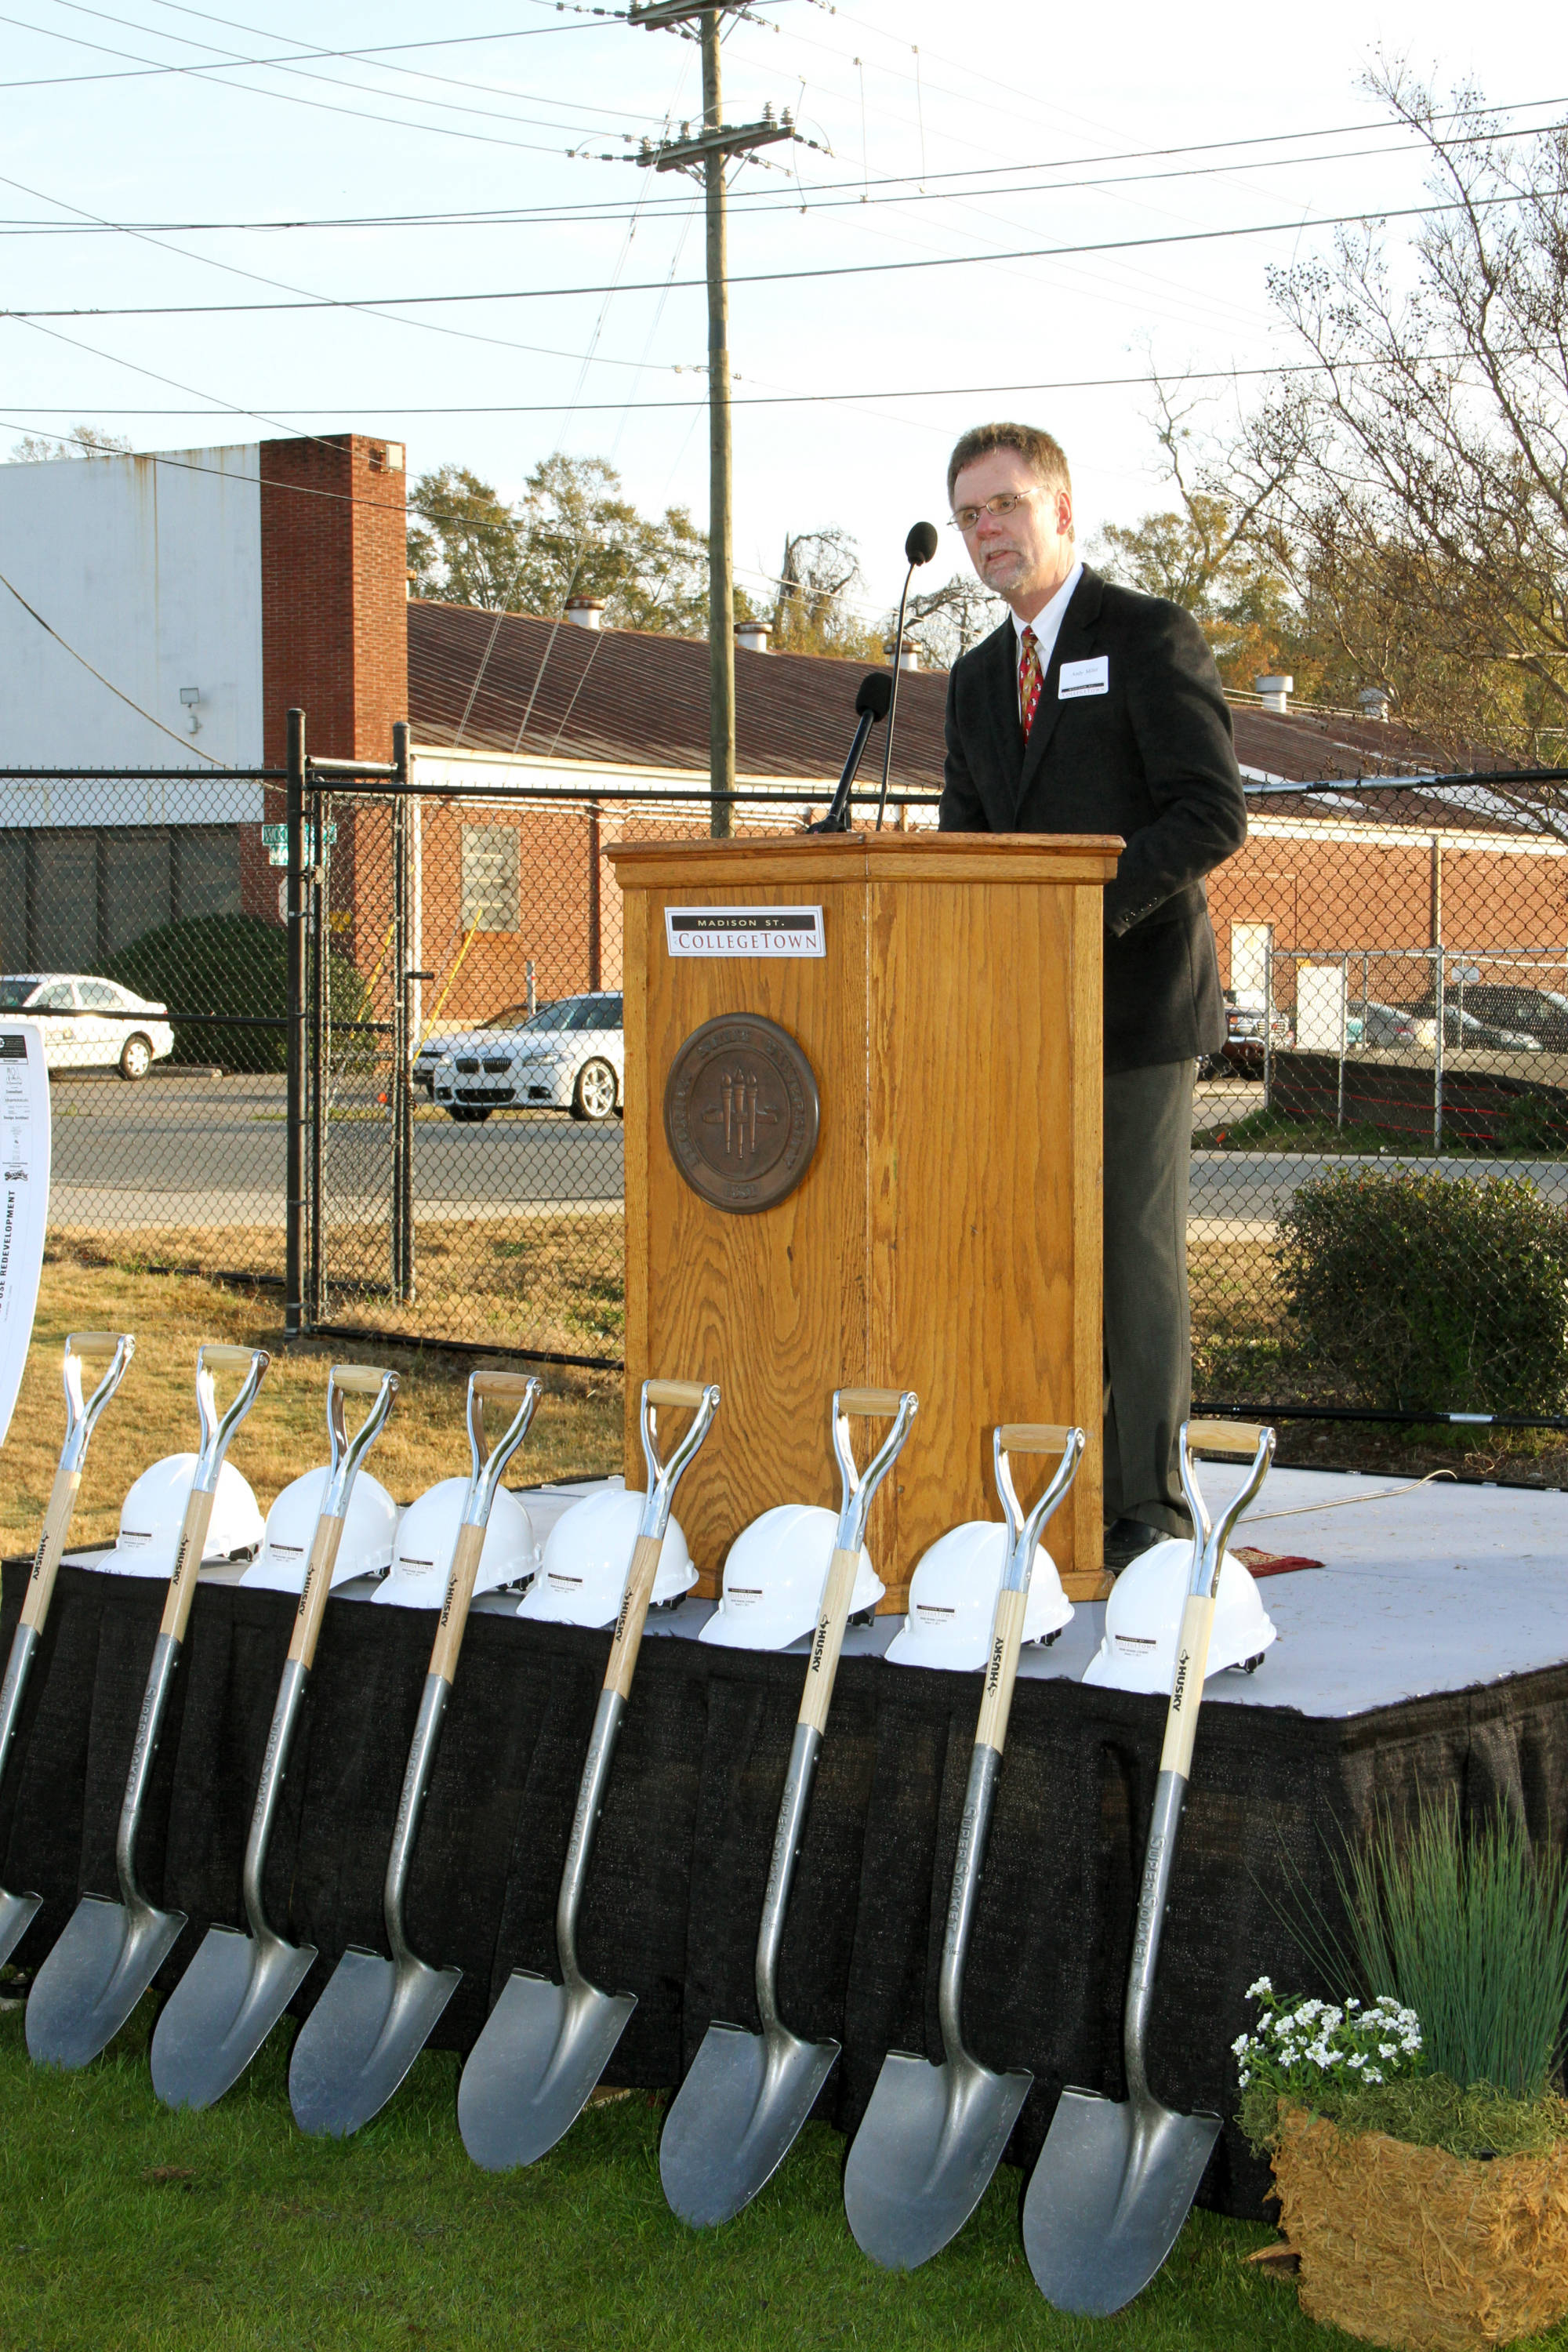 CollegeTown Groundbreaking: Press Conference with remarks held on the old intramural fields which is right across Woodward Avenue from CollegeTown. Groundbreaking was held on site.#$%^#$%^Andy Miller, President of Seminole Boosters is at the podium.